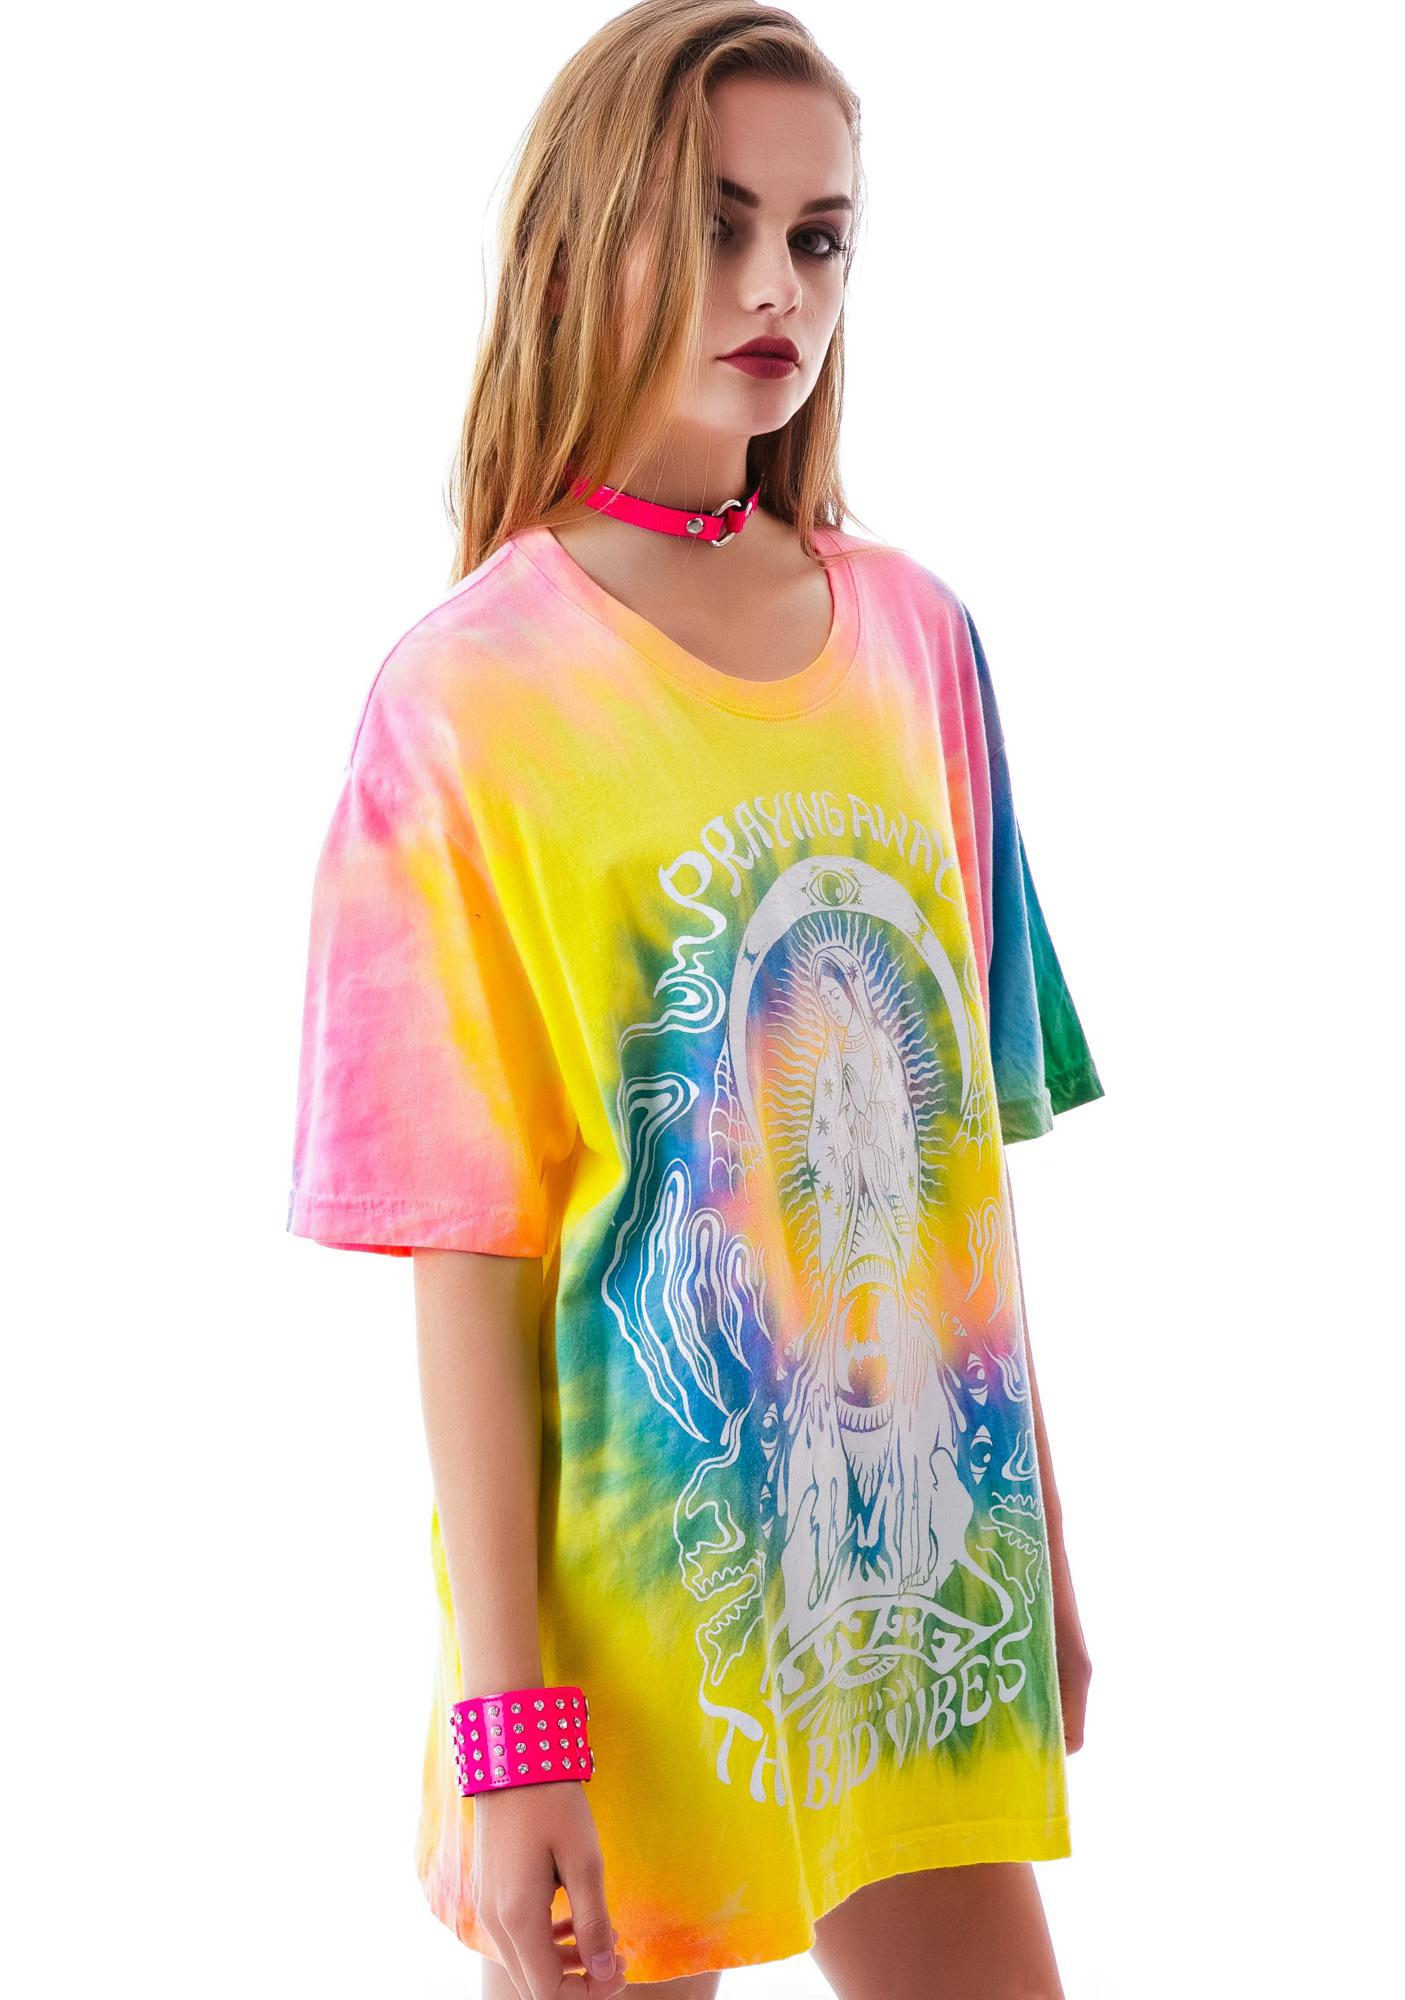 UNIF Praying Away Tee